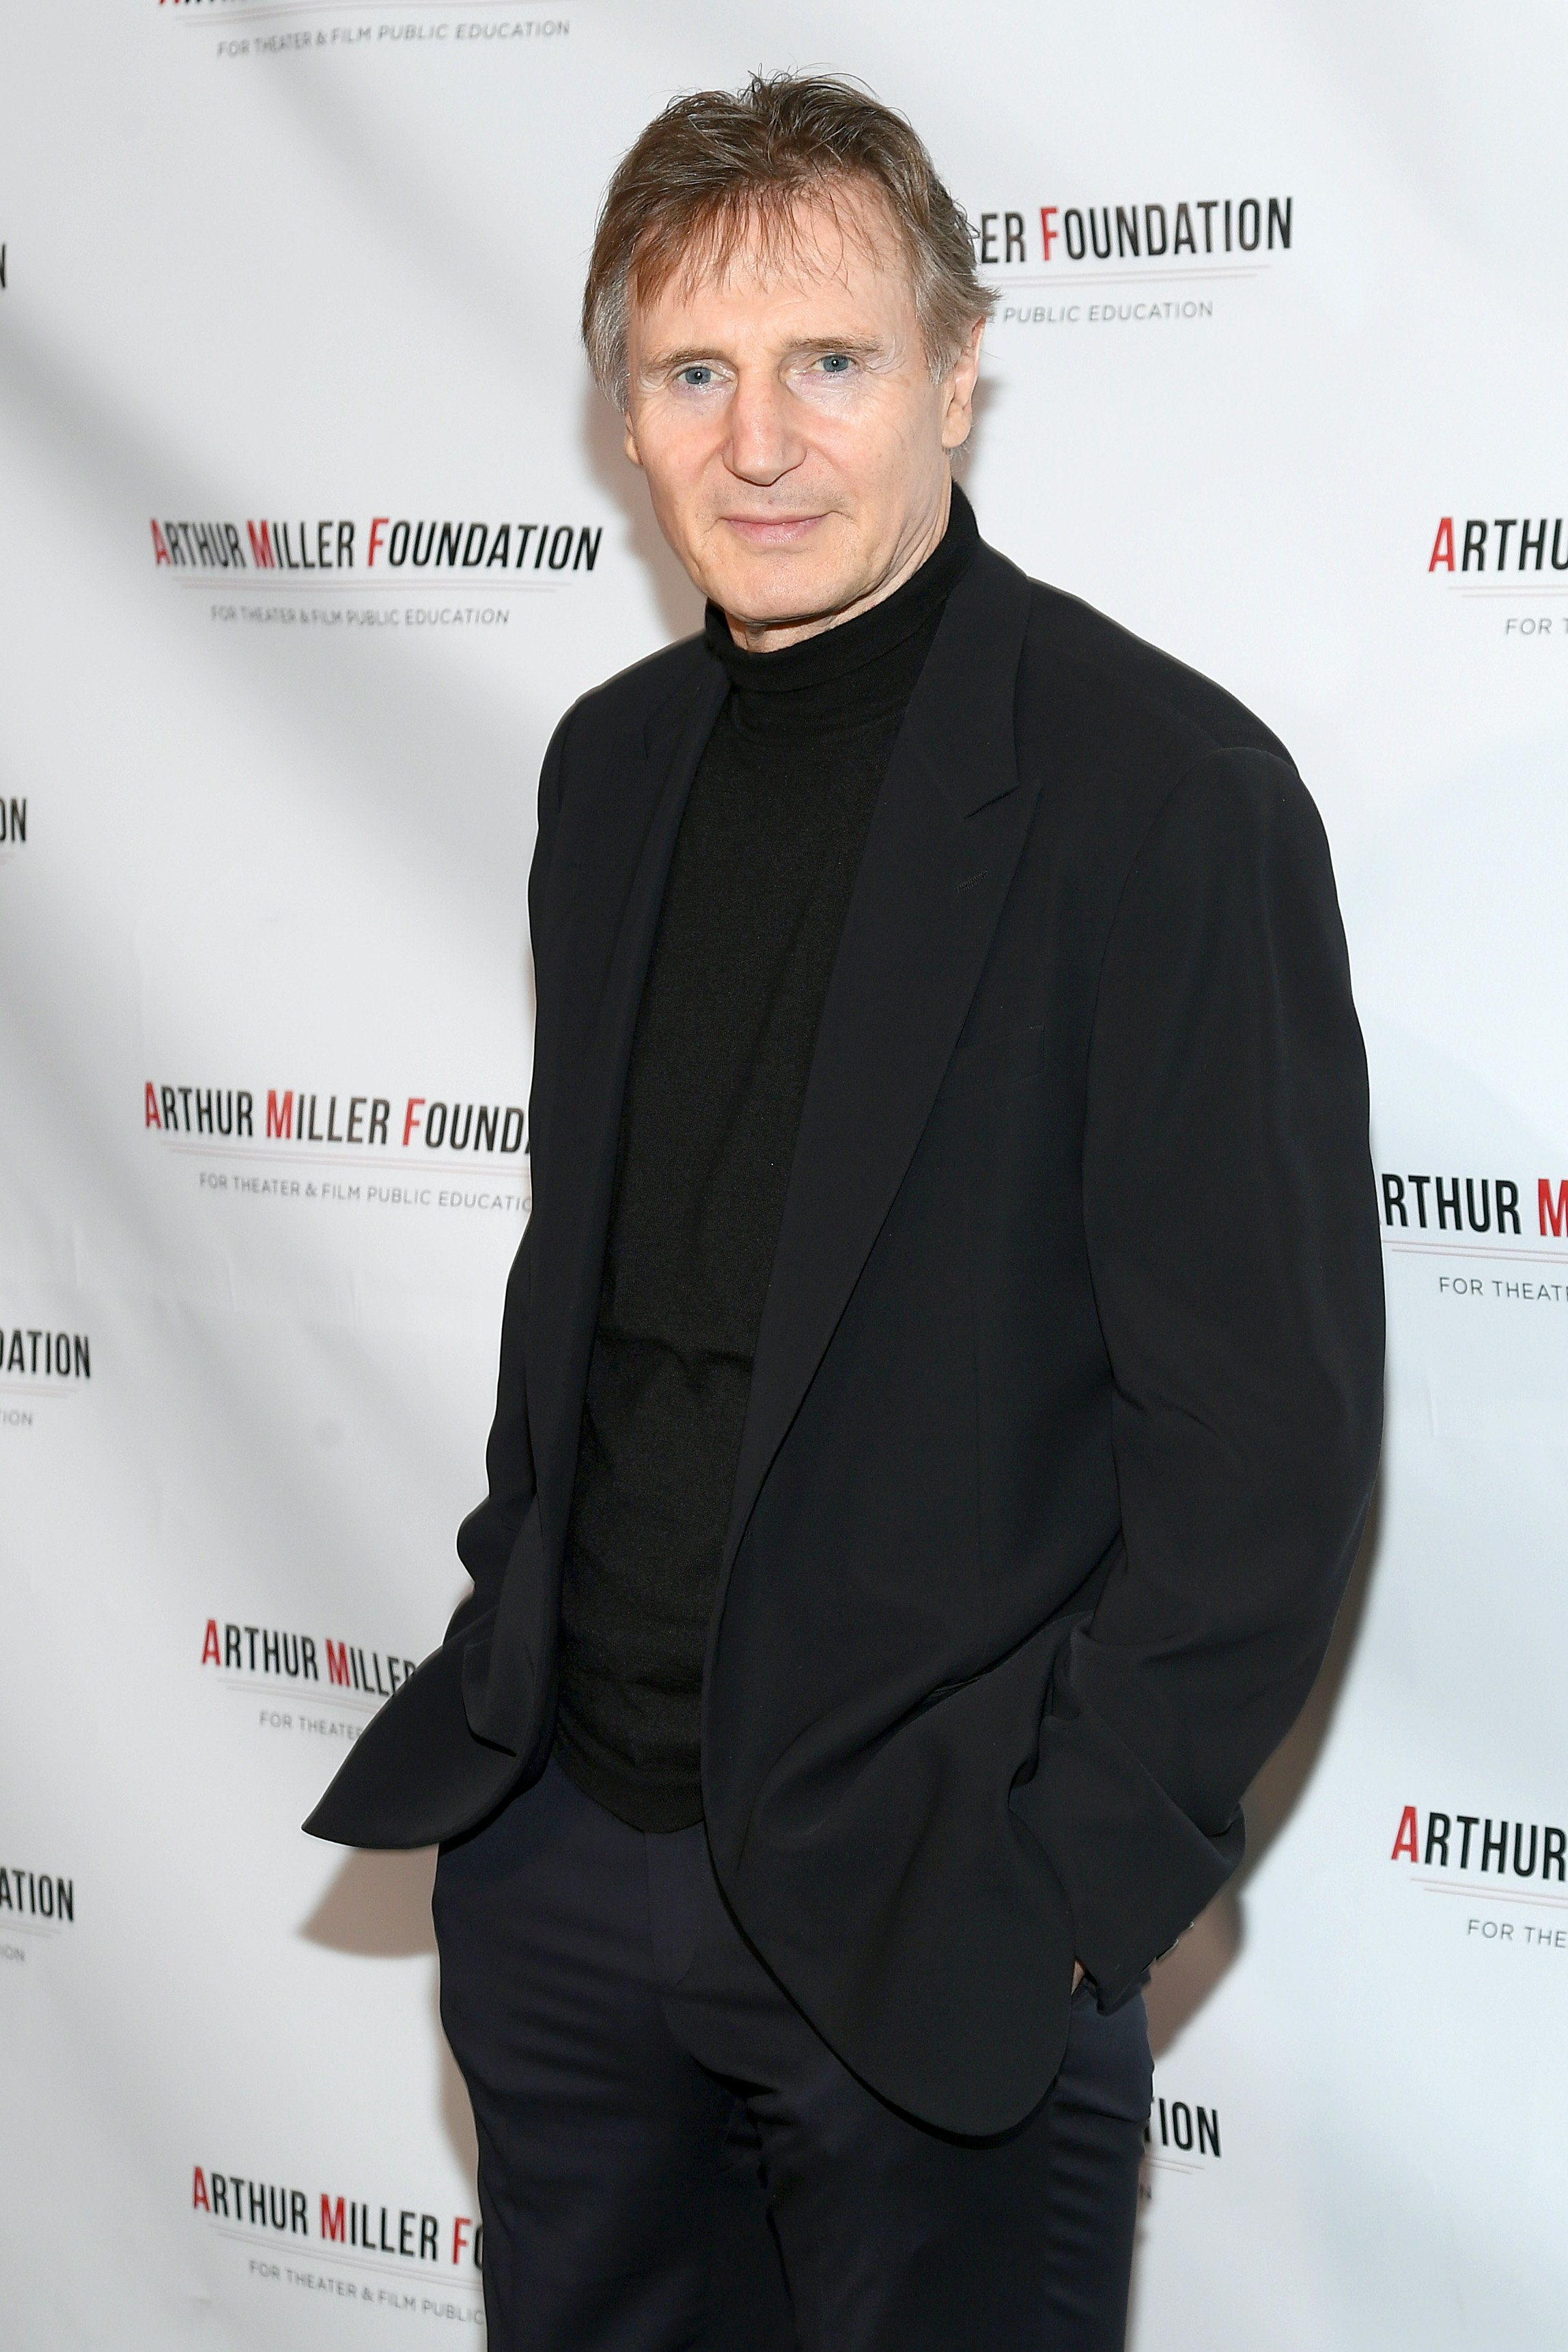 Liam Neeson at the 2018 Arthur Miller Foundation Honors in NYC on October 22, 2018.   Photo: Getty Images.